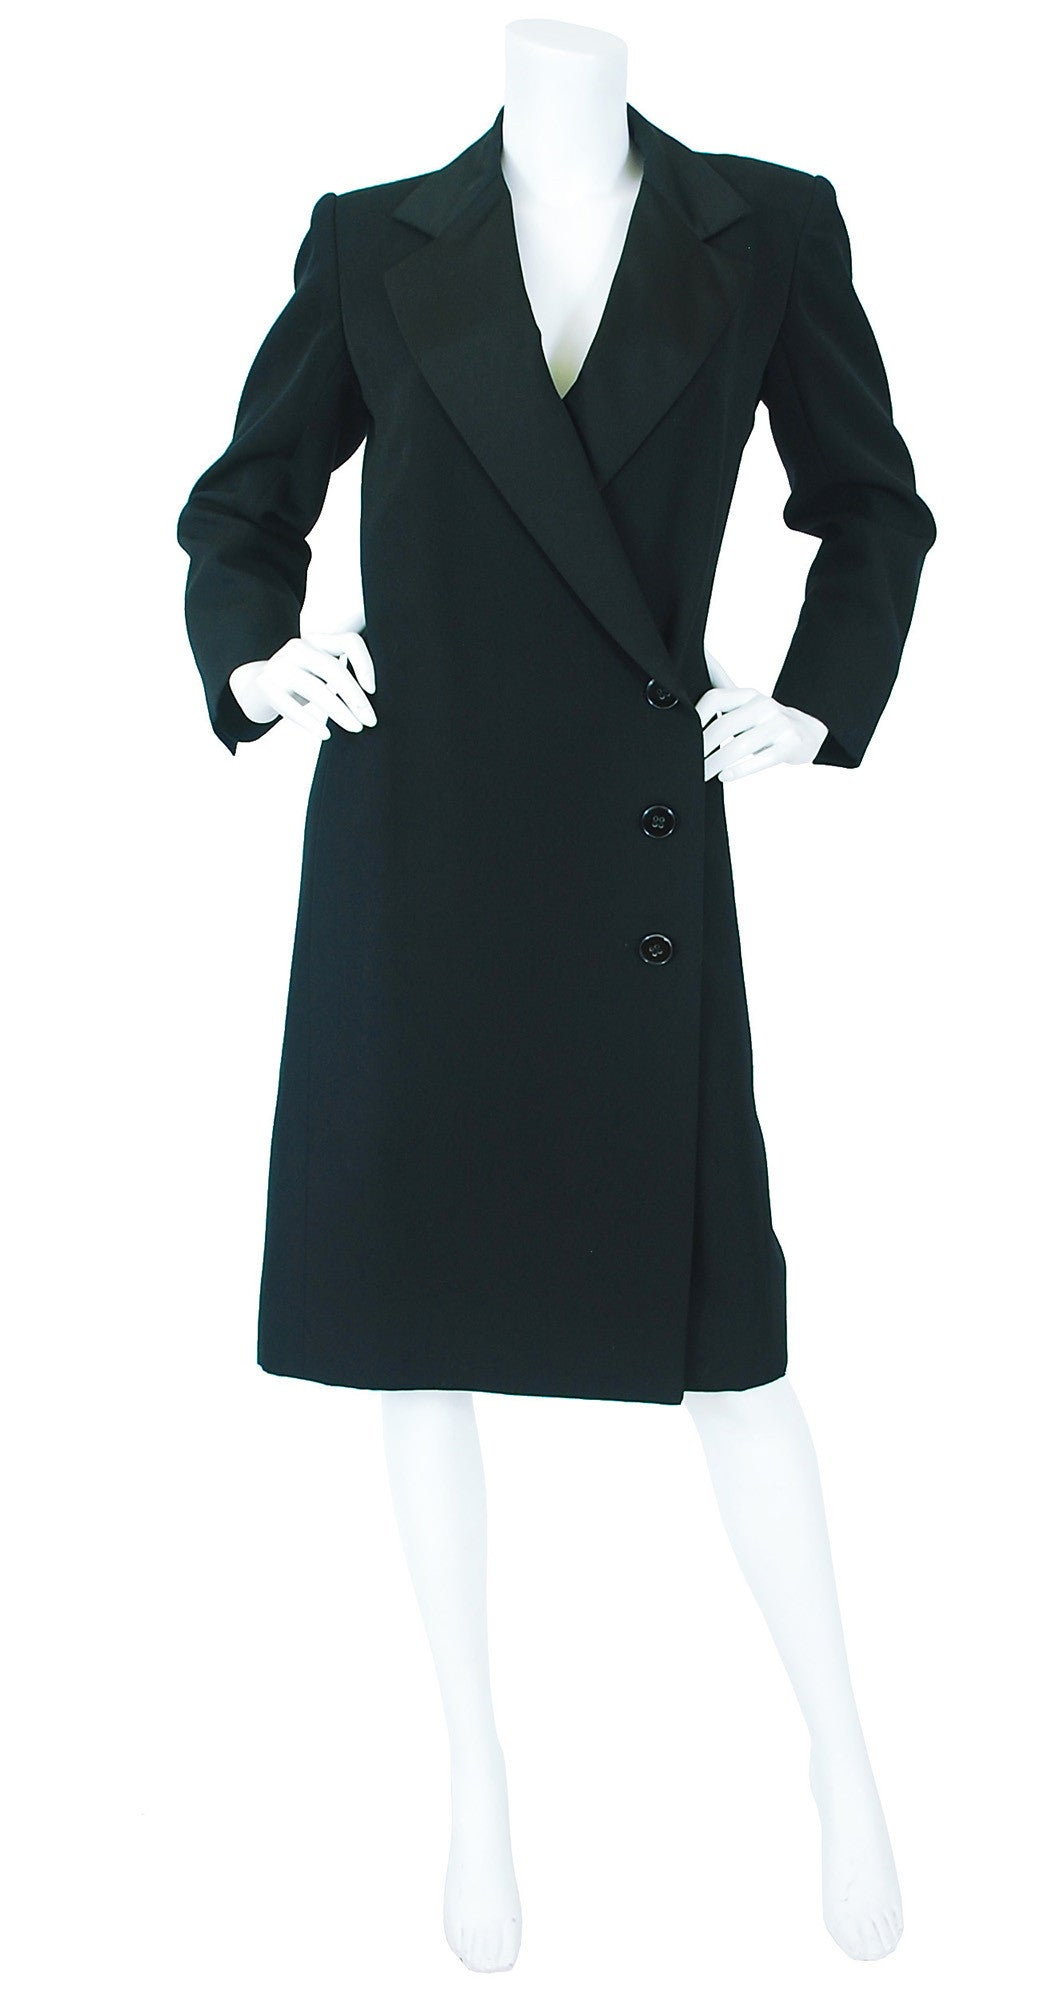 "c.1980 Iconic ""Le Smoking"" Tuxedo Coat"